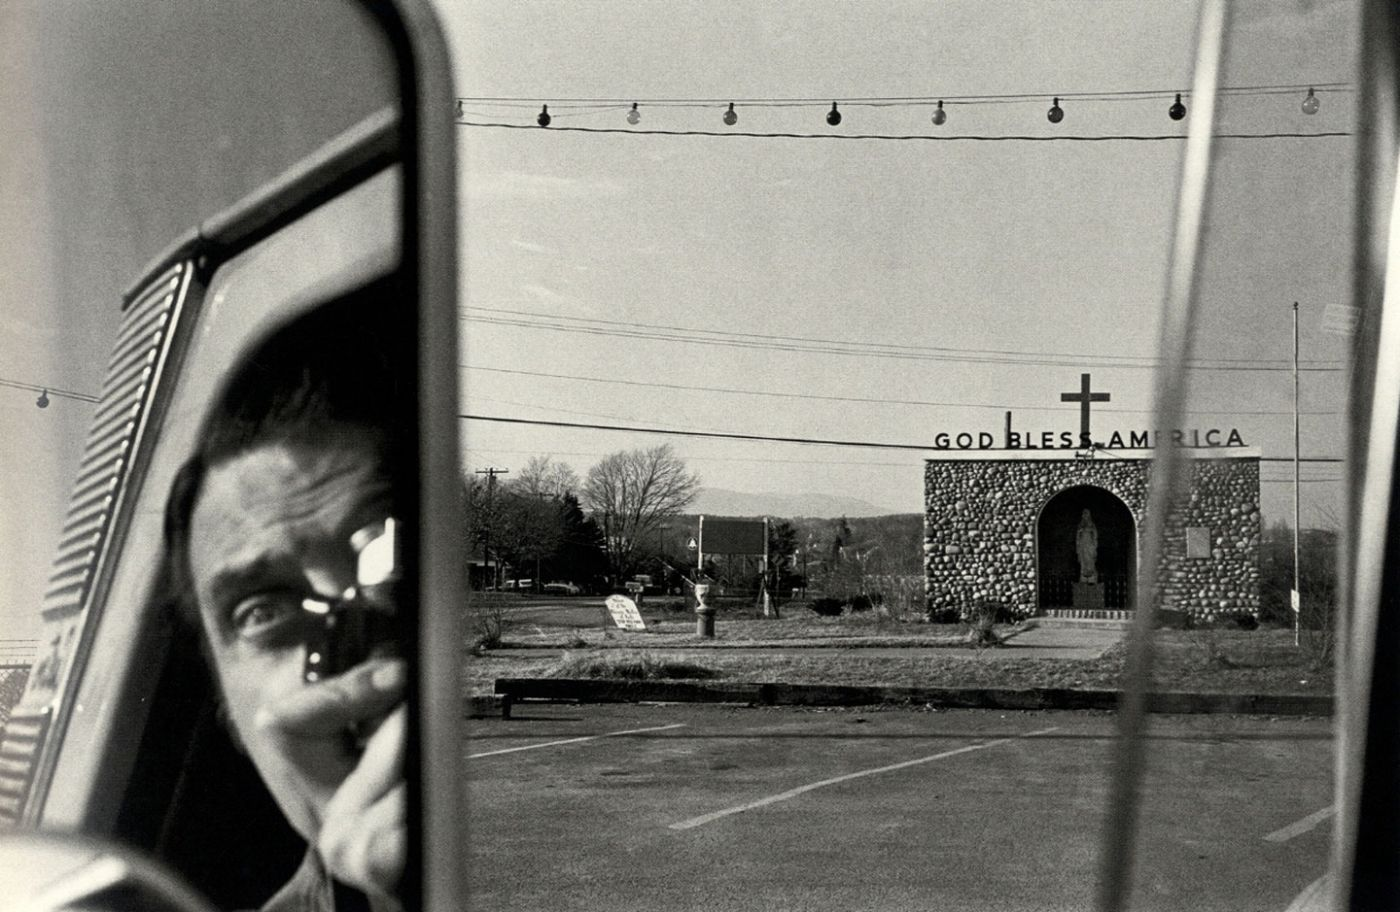 Lee Friedlander: 1960s - 2000s (Rat Hole Gallery) [SIGNED]